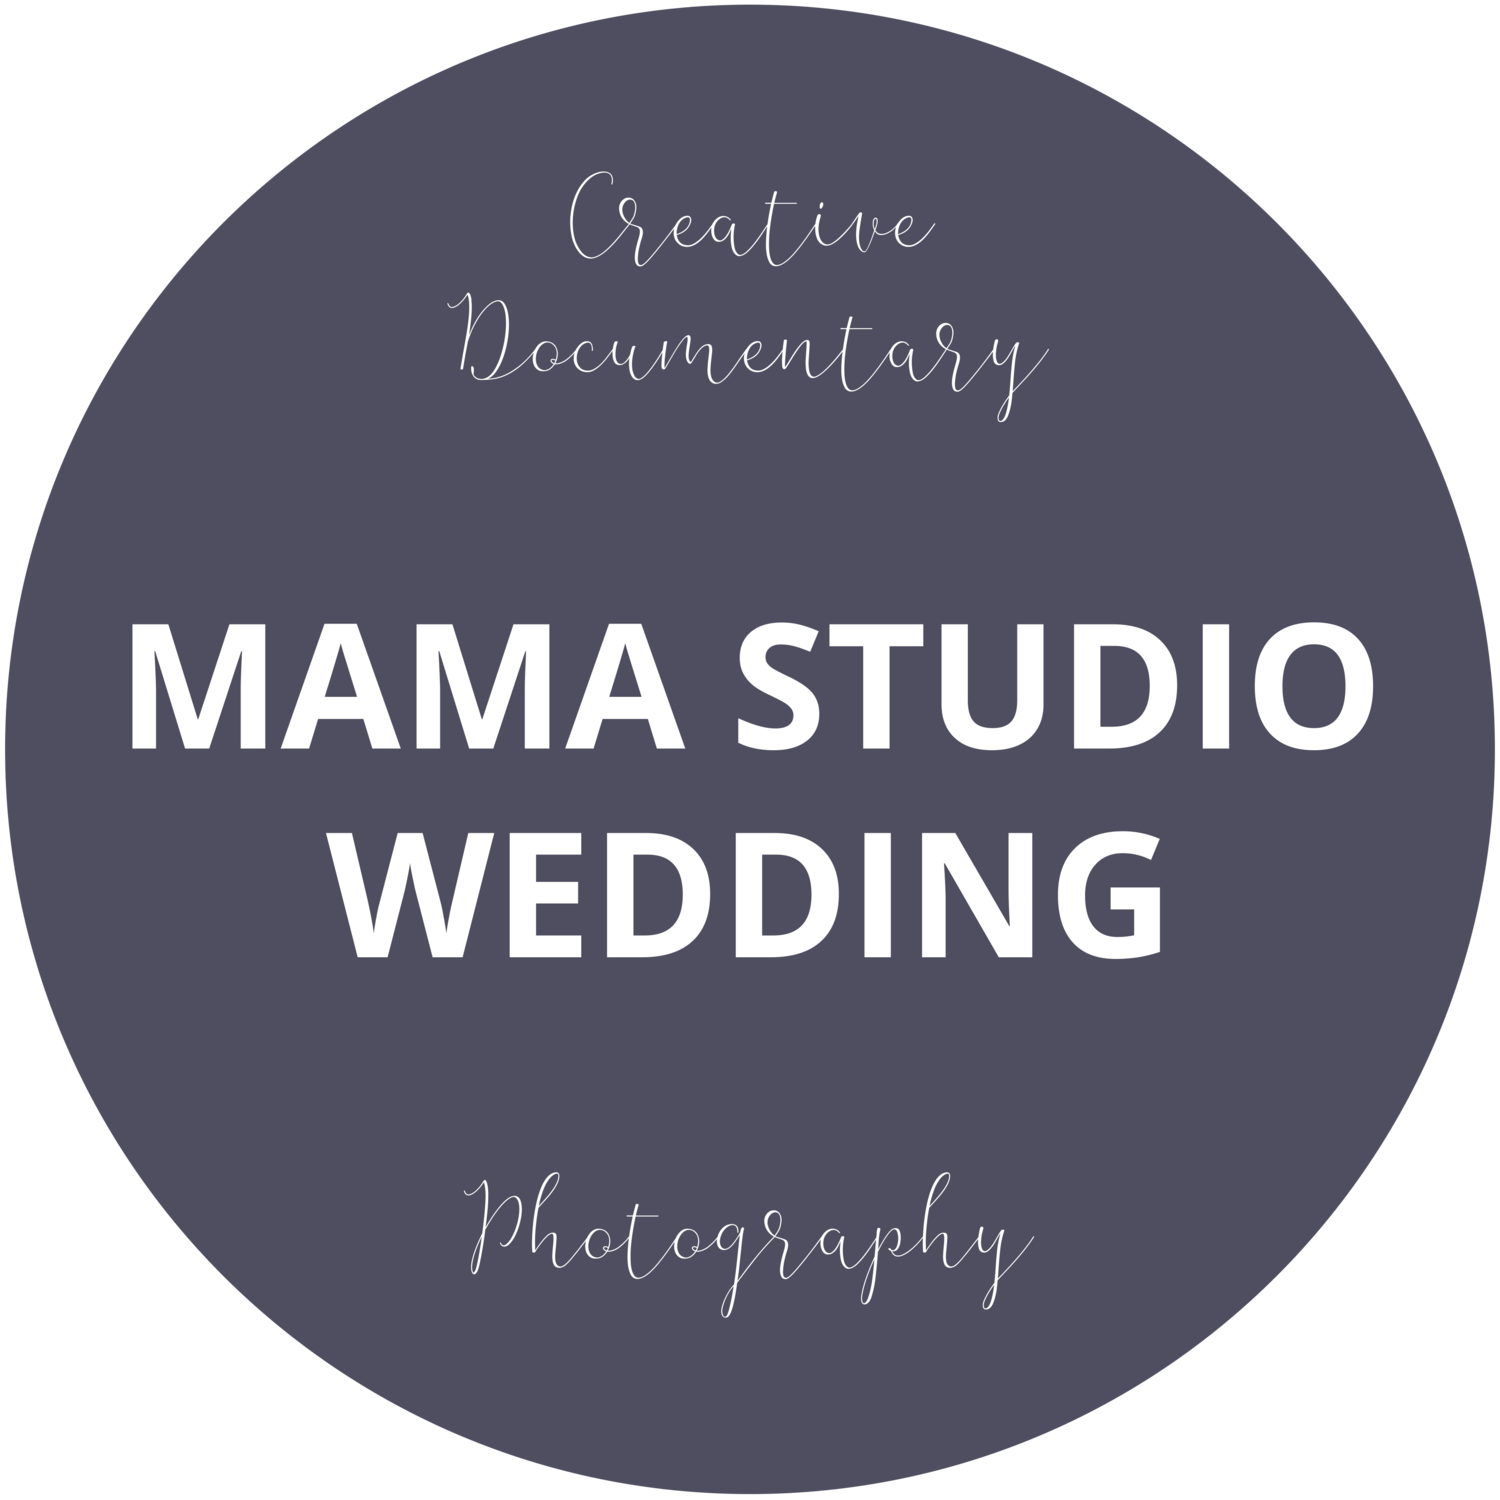 Mama Studio Wedding - Documentary Photography